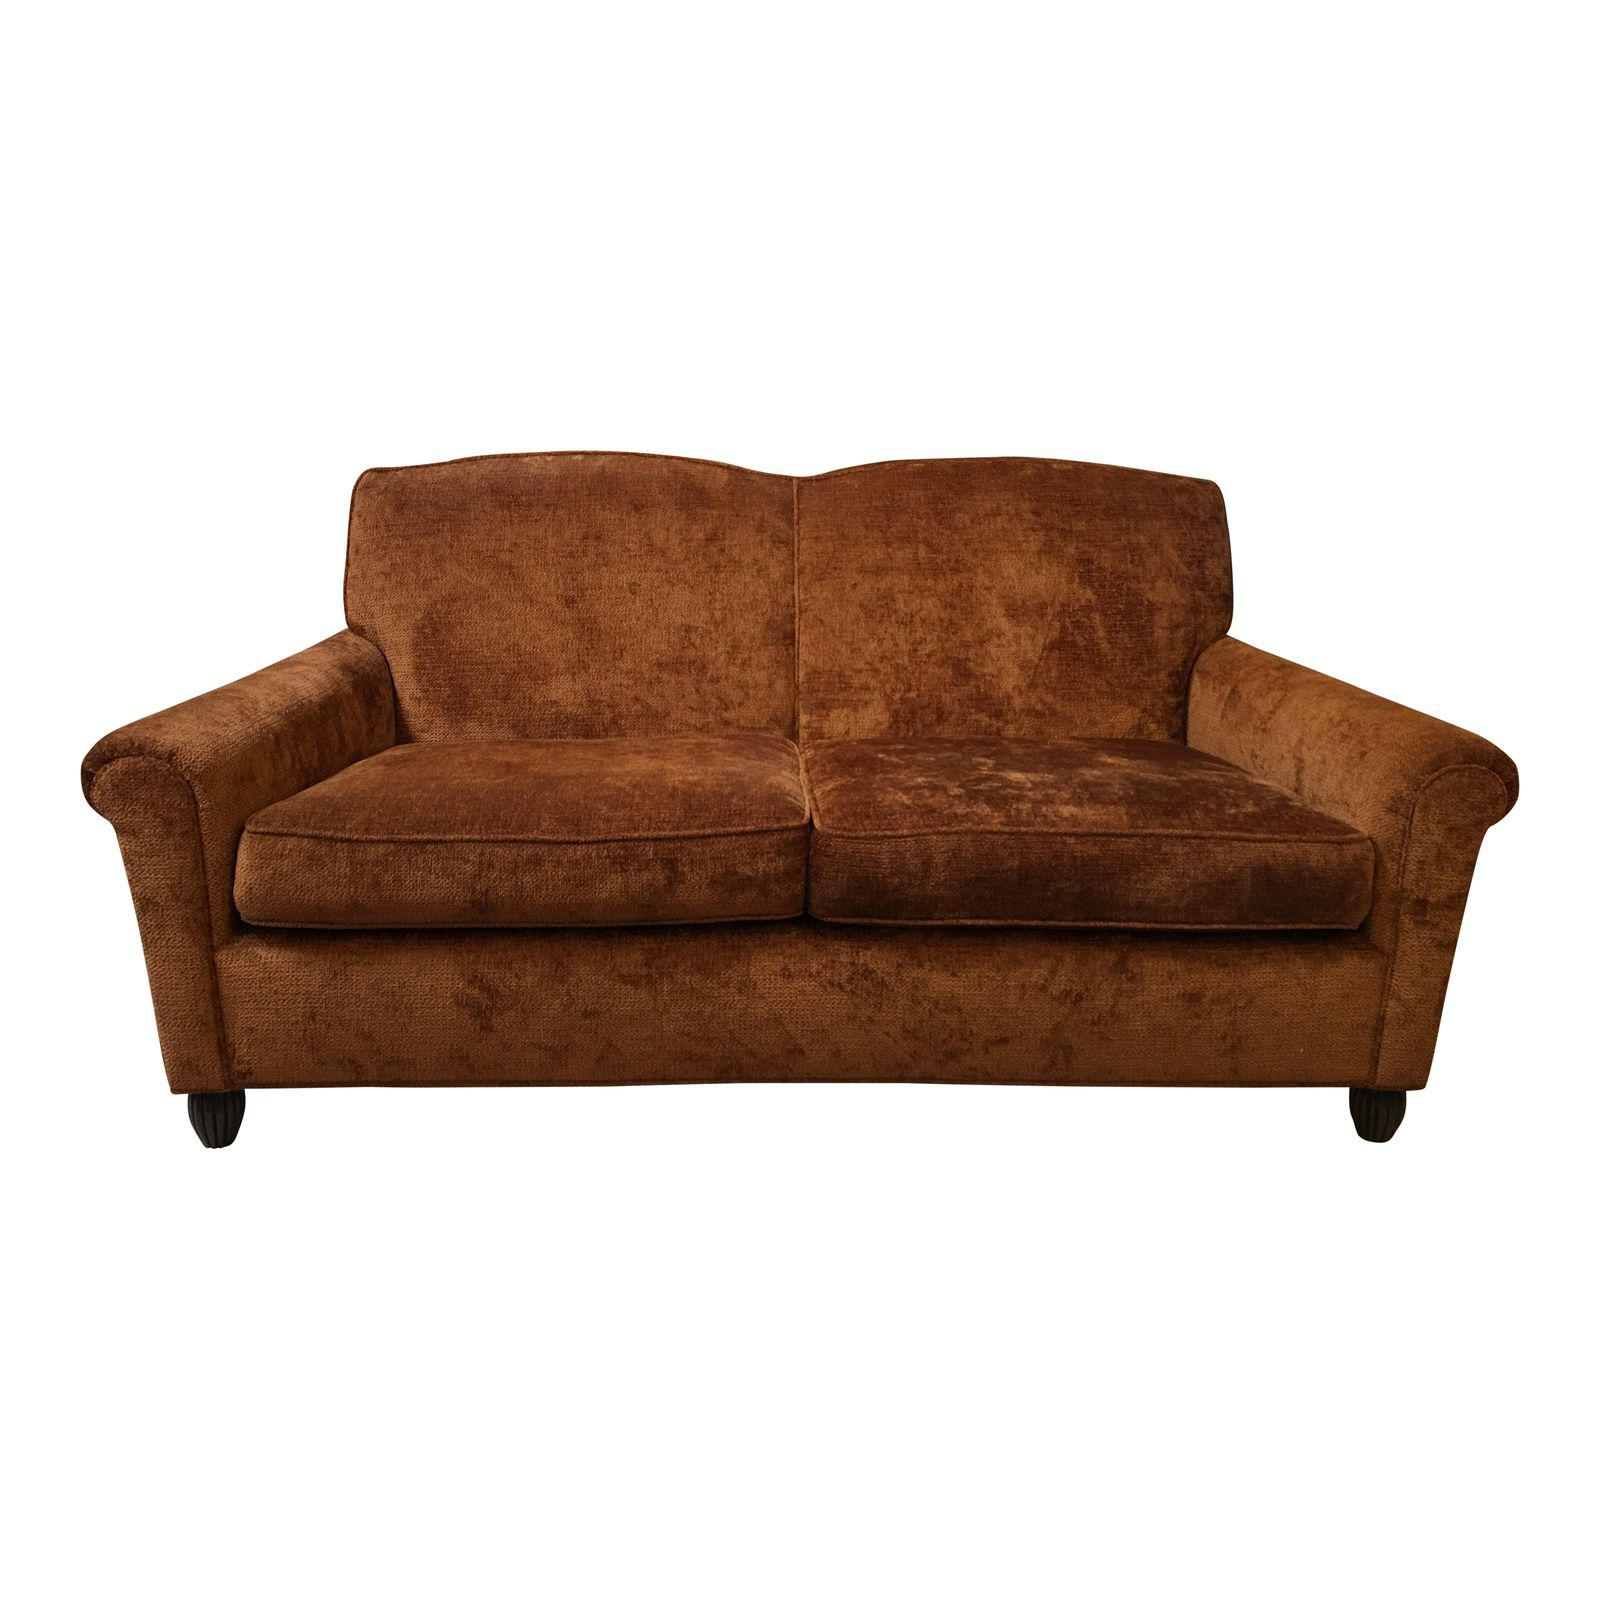 A Rudin Custom Sofa Loveseat Original Price 6 000 00